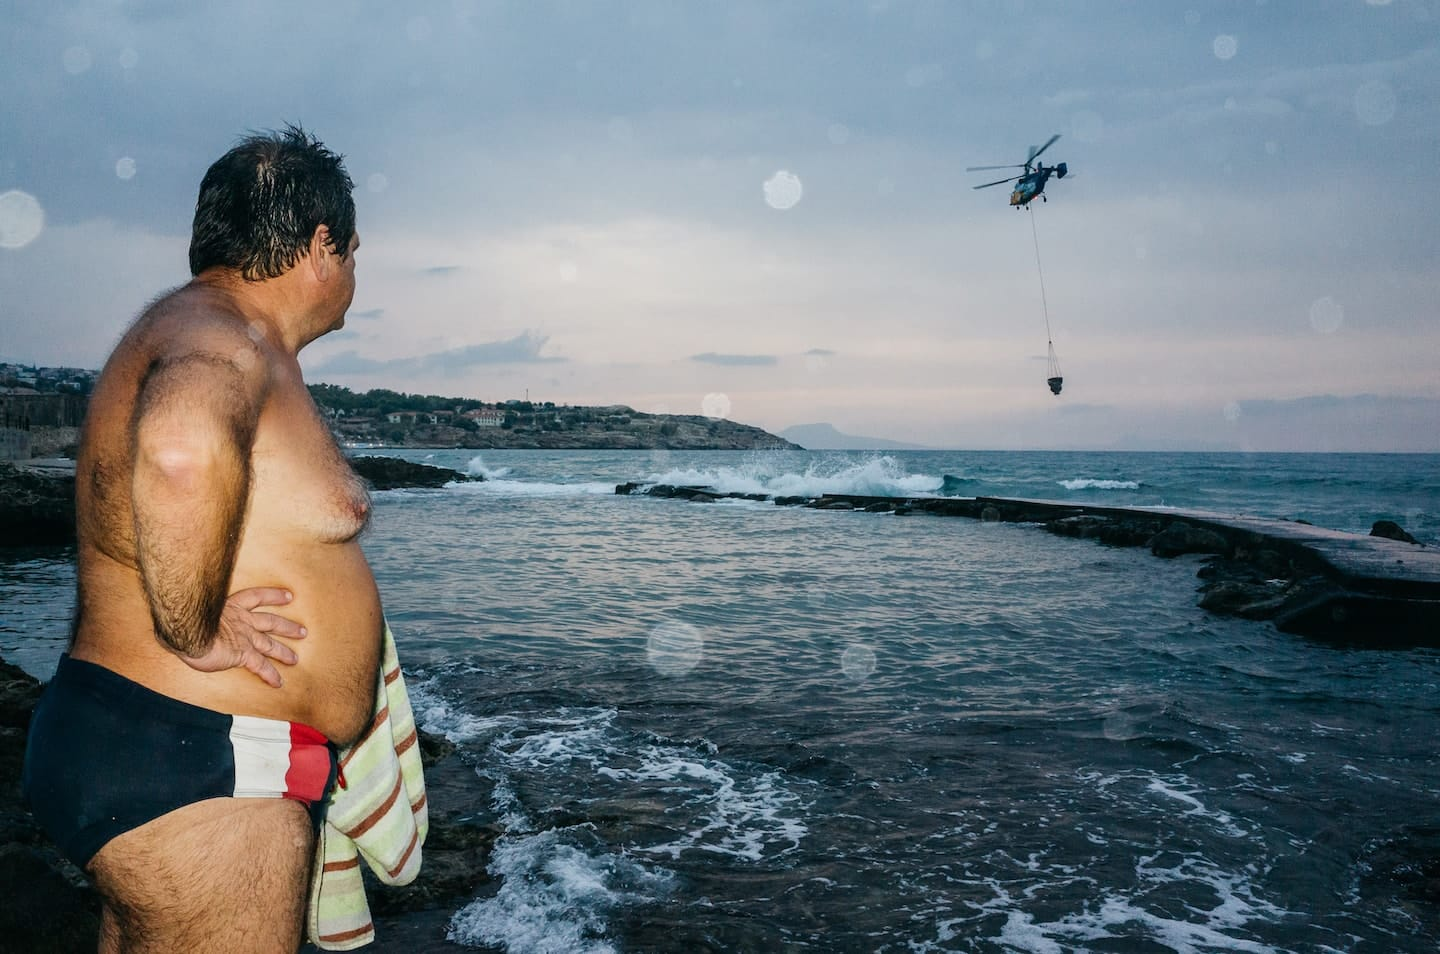 """""""Speedos and the chopper"""" by Spyros Papaspyropoulos"""